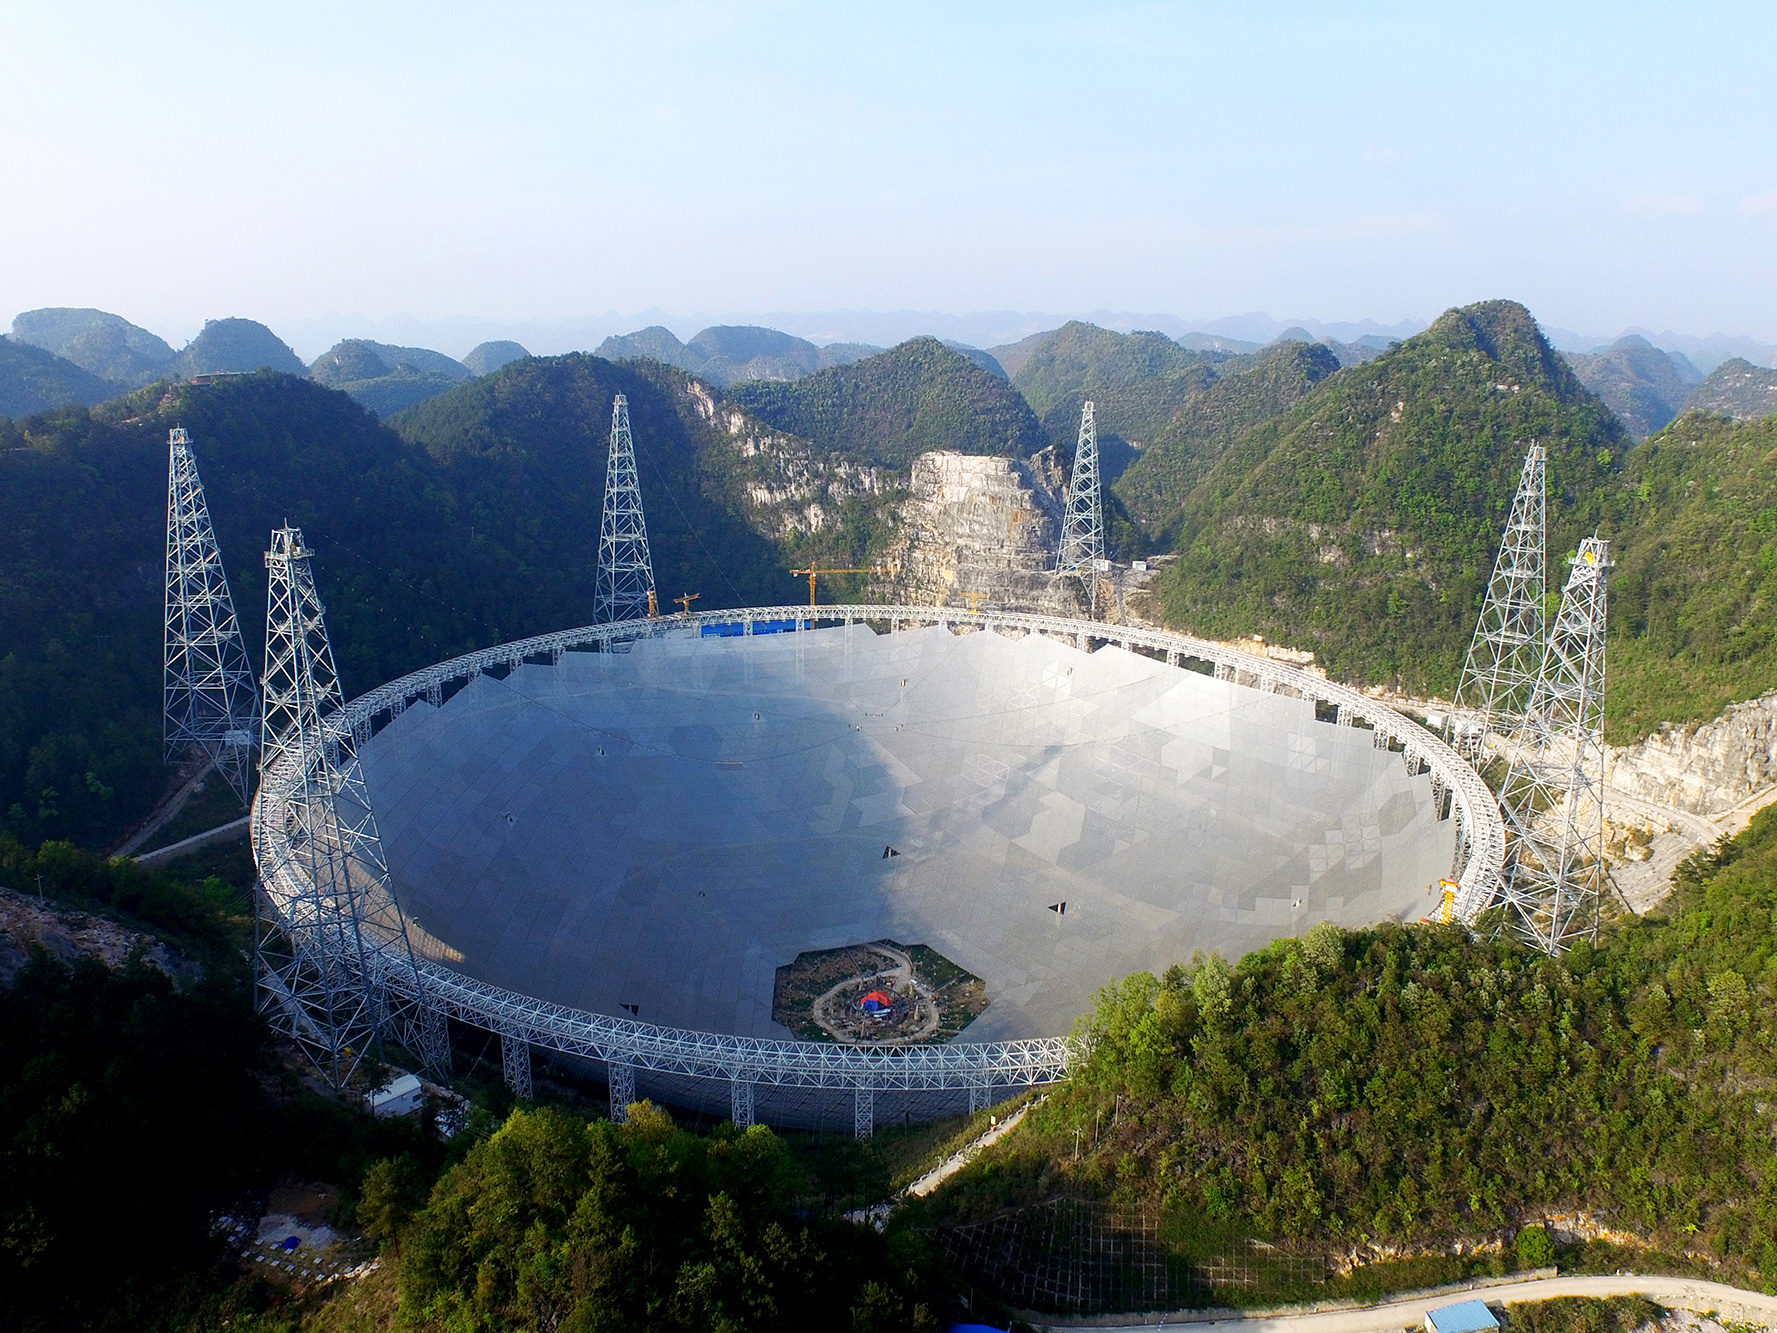 The Five hundred metre Aperture Spherical Telescope (FAST) is a radio telescope under construction in a natural basin in Pingtang County, Guizhou Province, southwest China. Construction on the FAST project began in 2011 and is scheduled for completion by September 2016. Image credit: © NAOC.